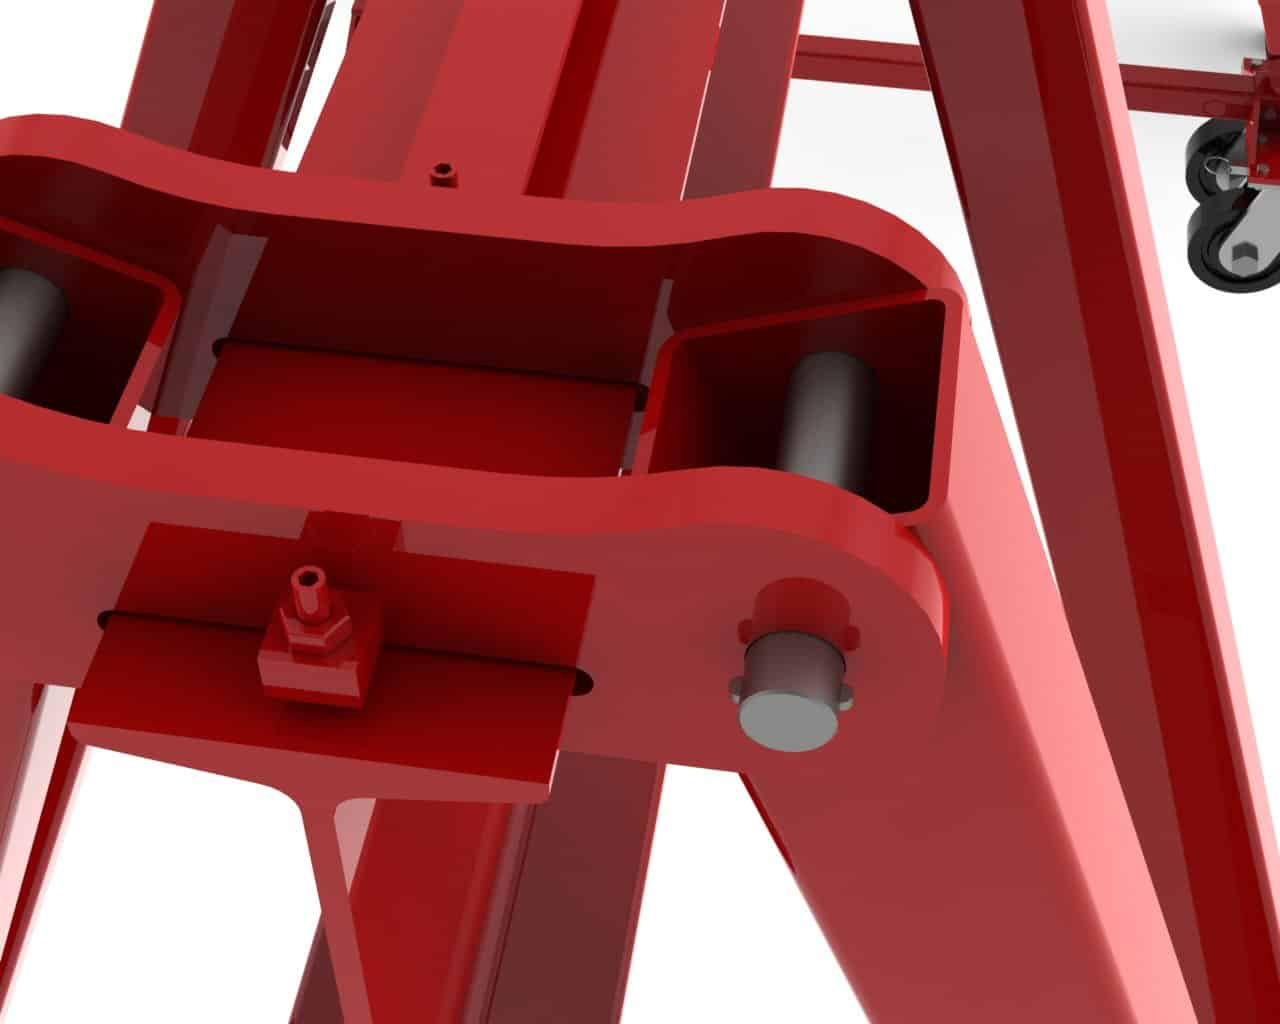 Joint Detail of the Four Bar Link Design | Wallace Cranes